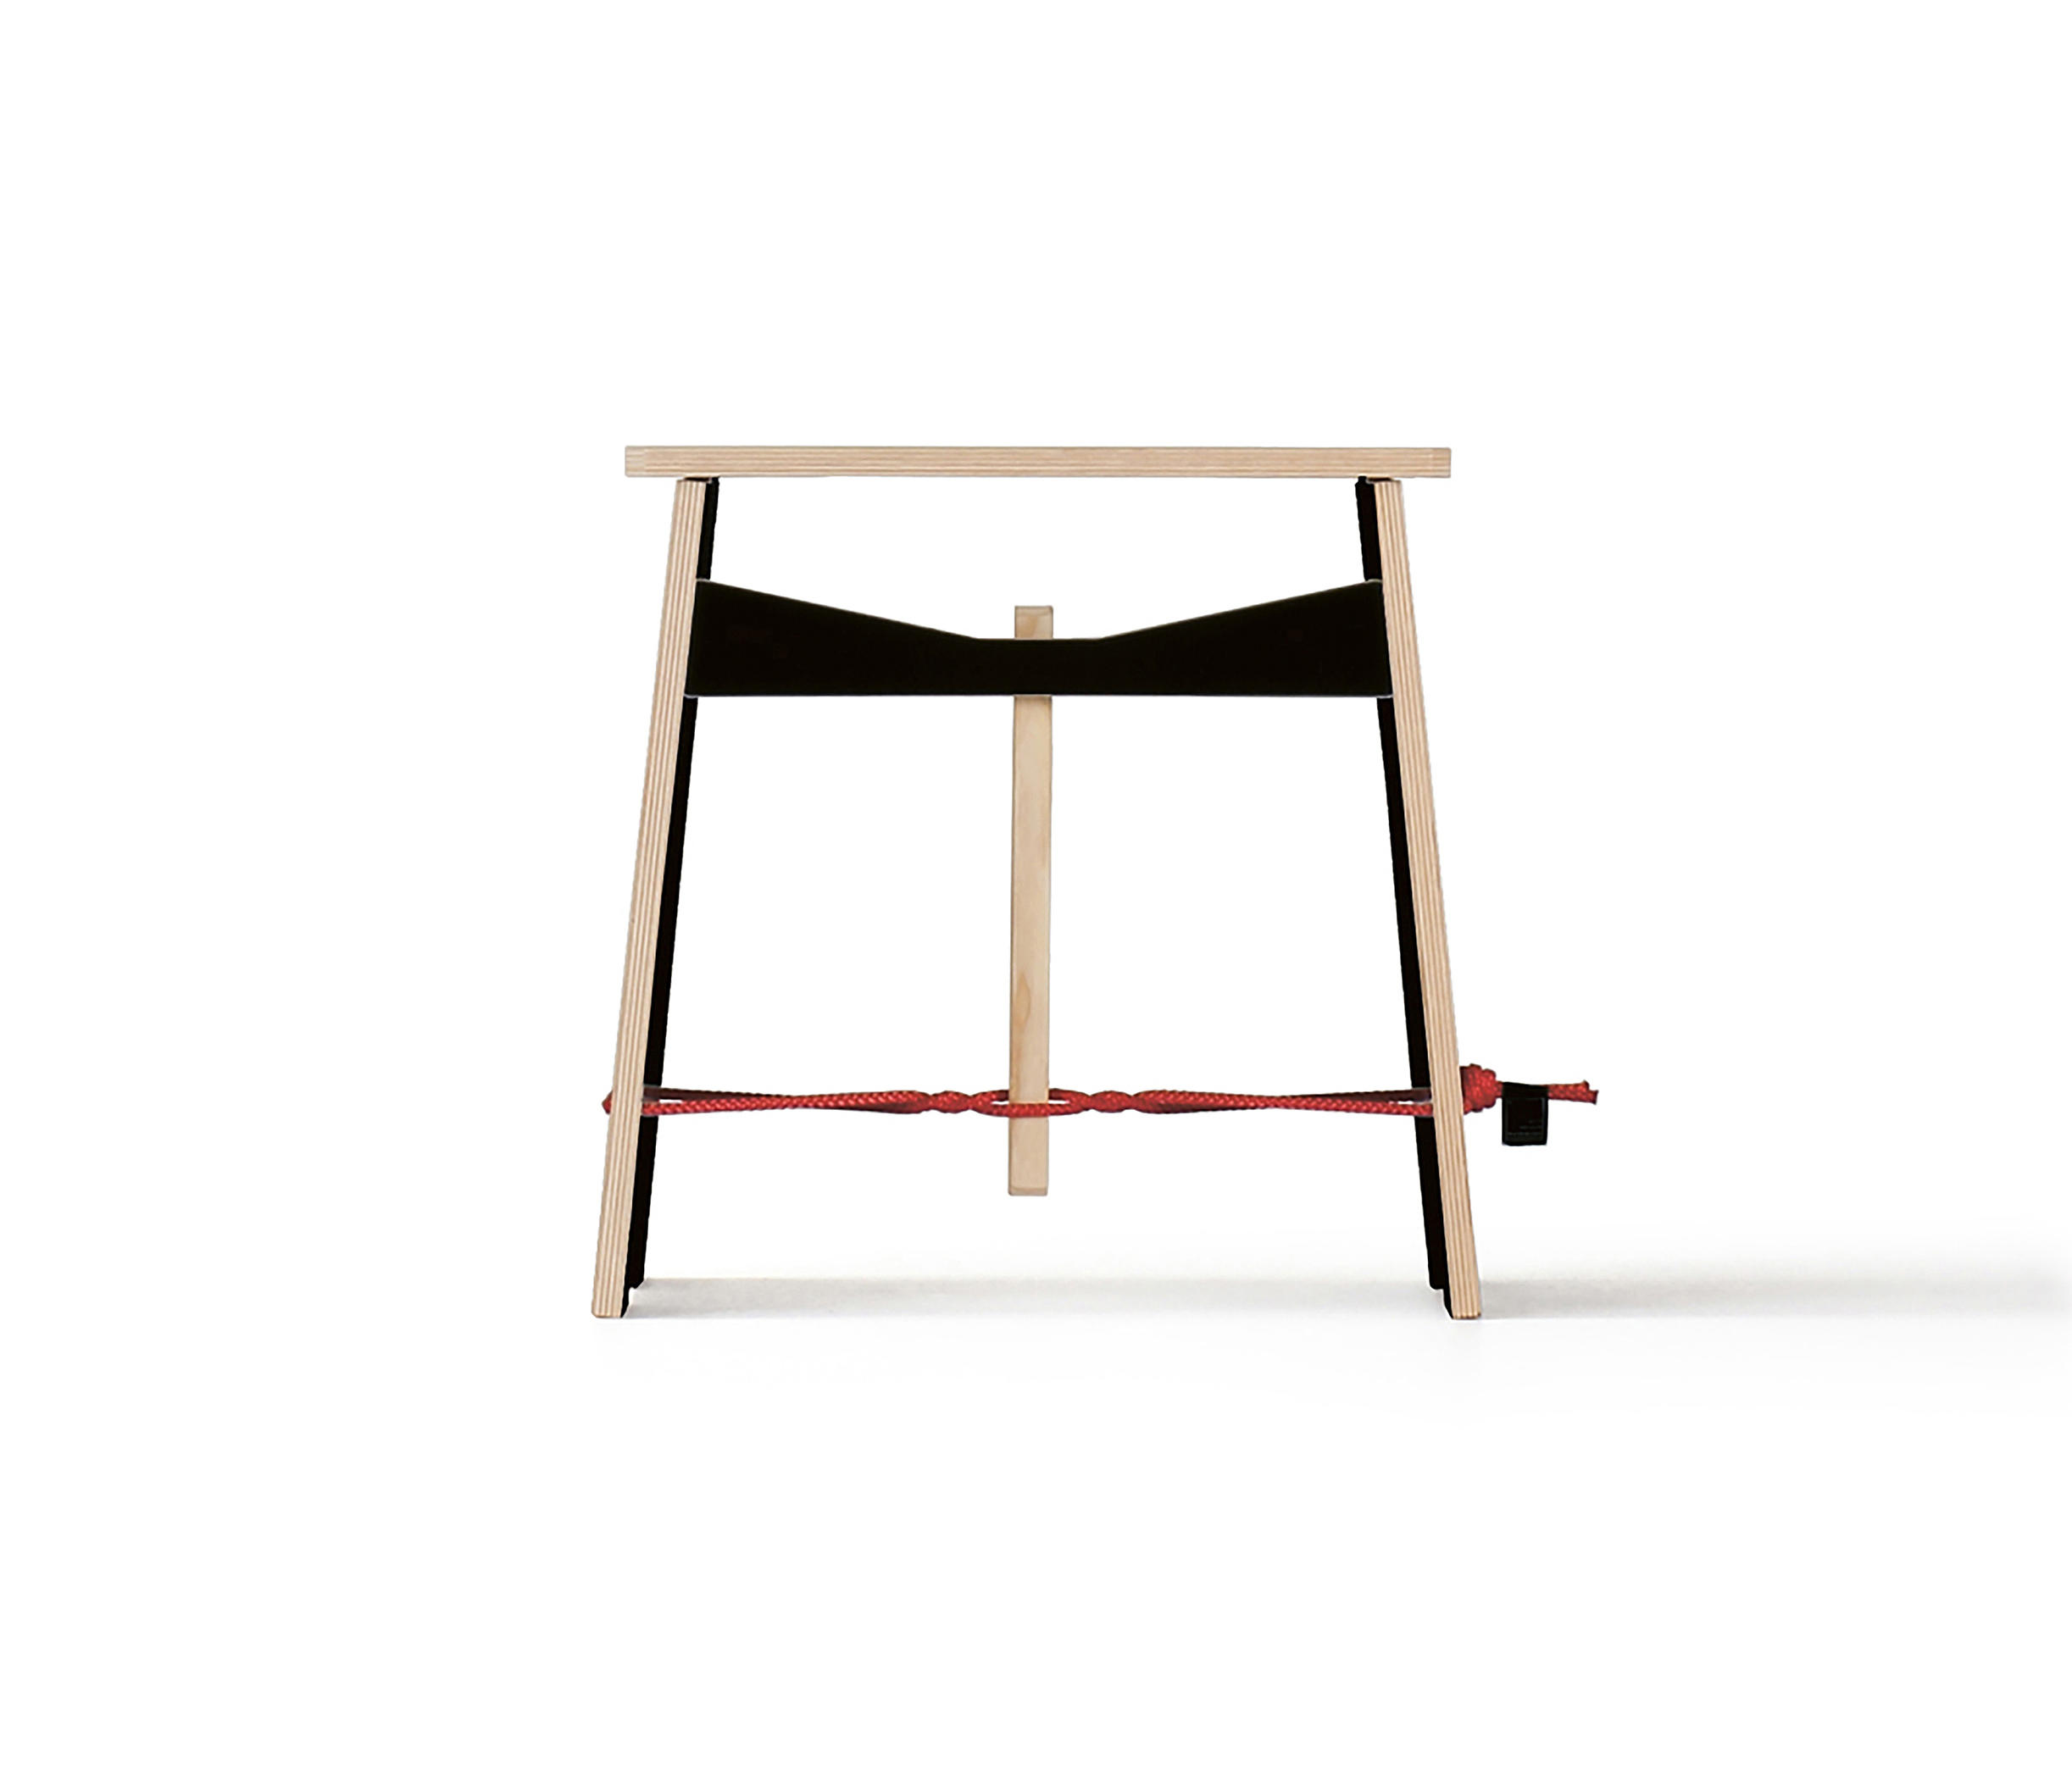 Nils Holger Moormann Berge strammer max - stools from nils holger moormann   architonic